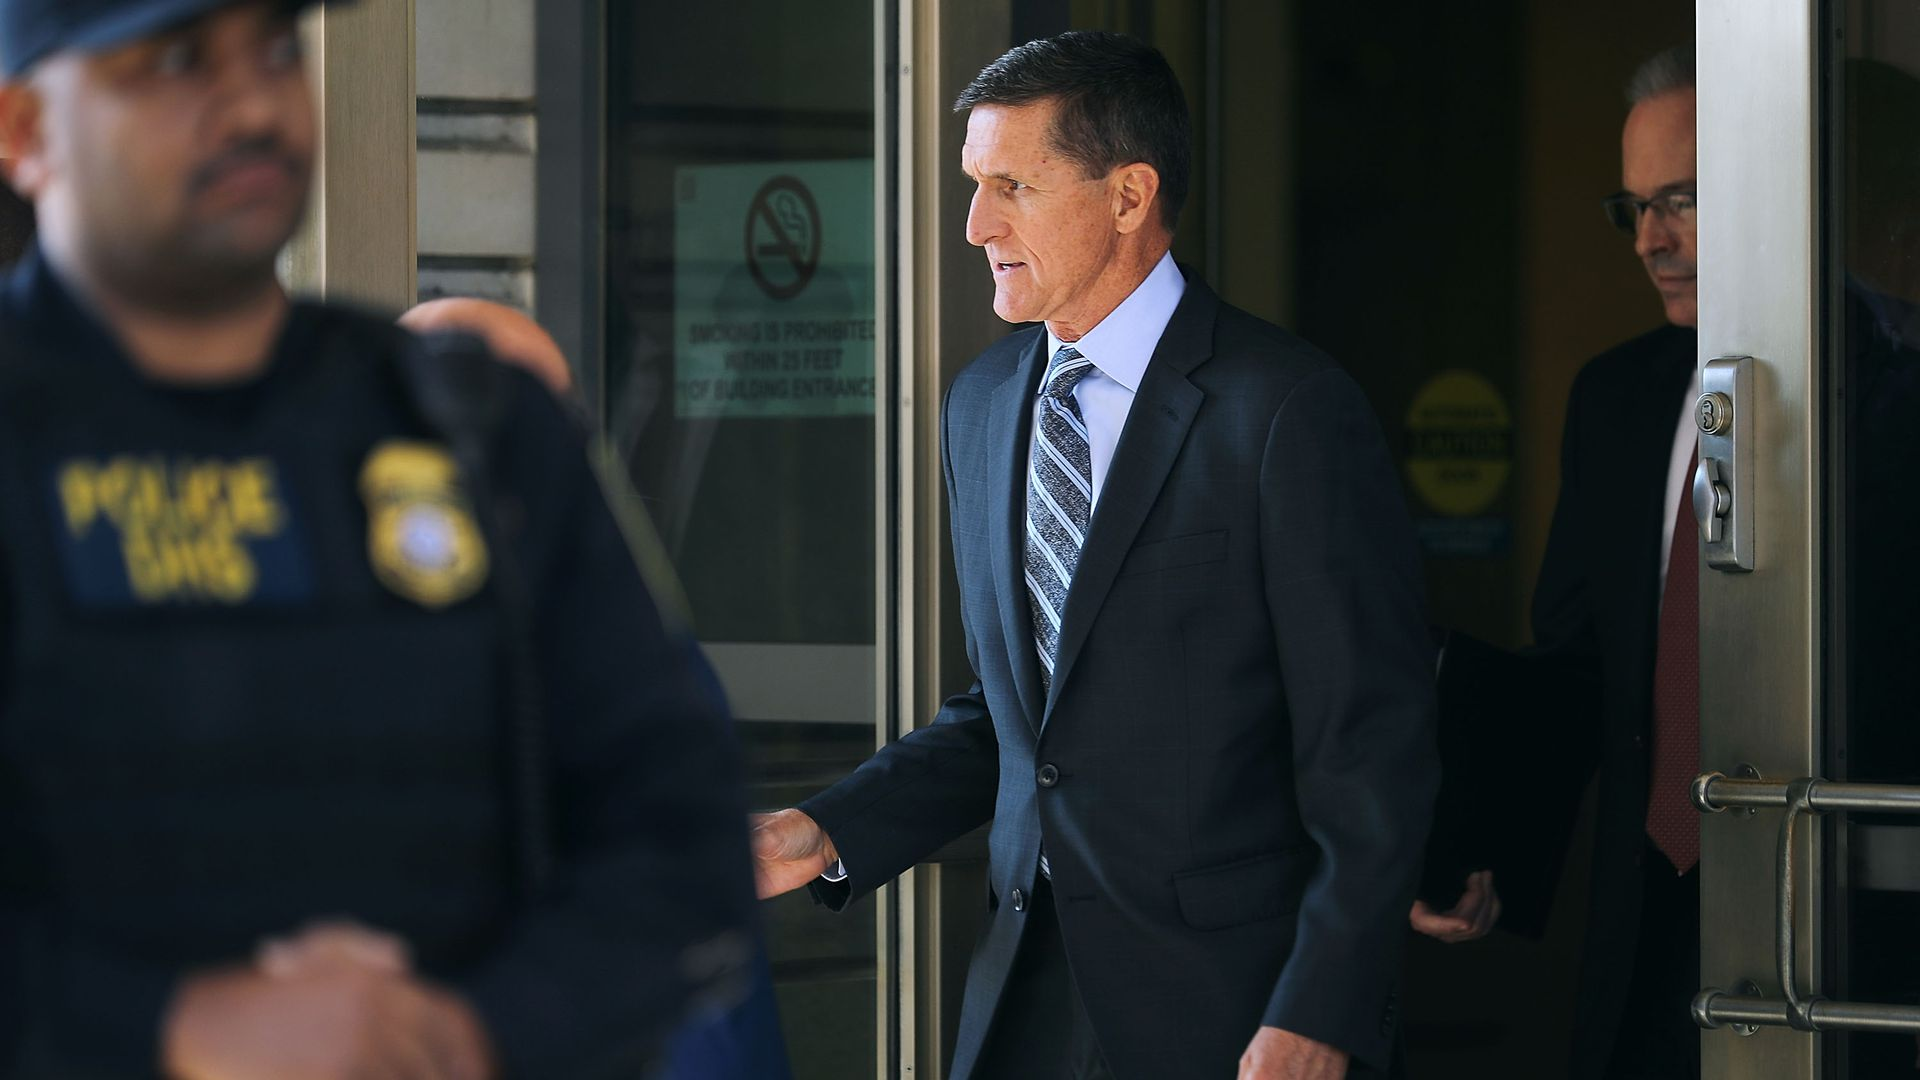 Michael Flynn wears a suit and walks out of a door.